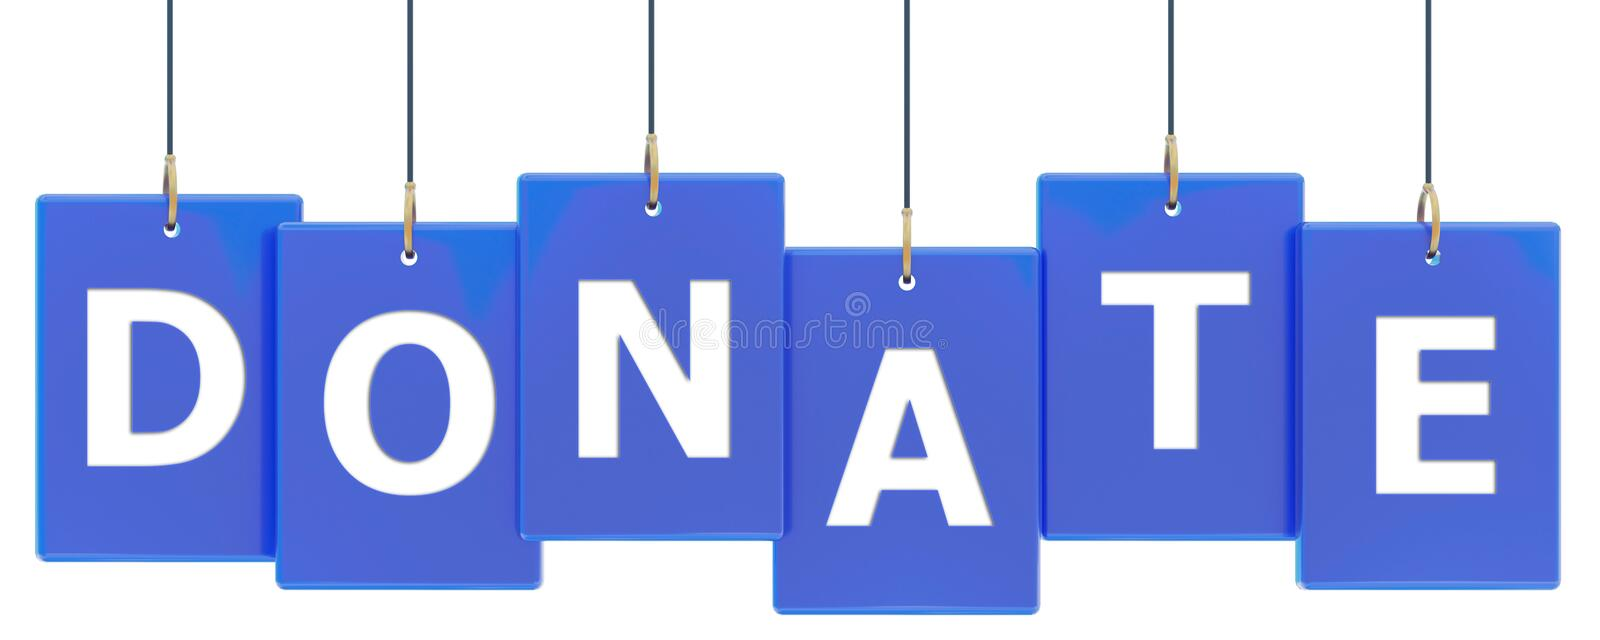 Donate tag banner. Donate 3d rendered blue tag banner , isolated on white background royalty free illustration